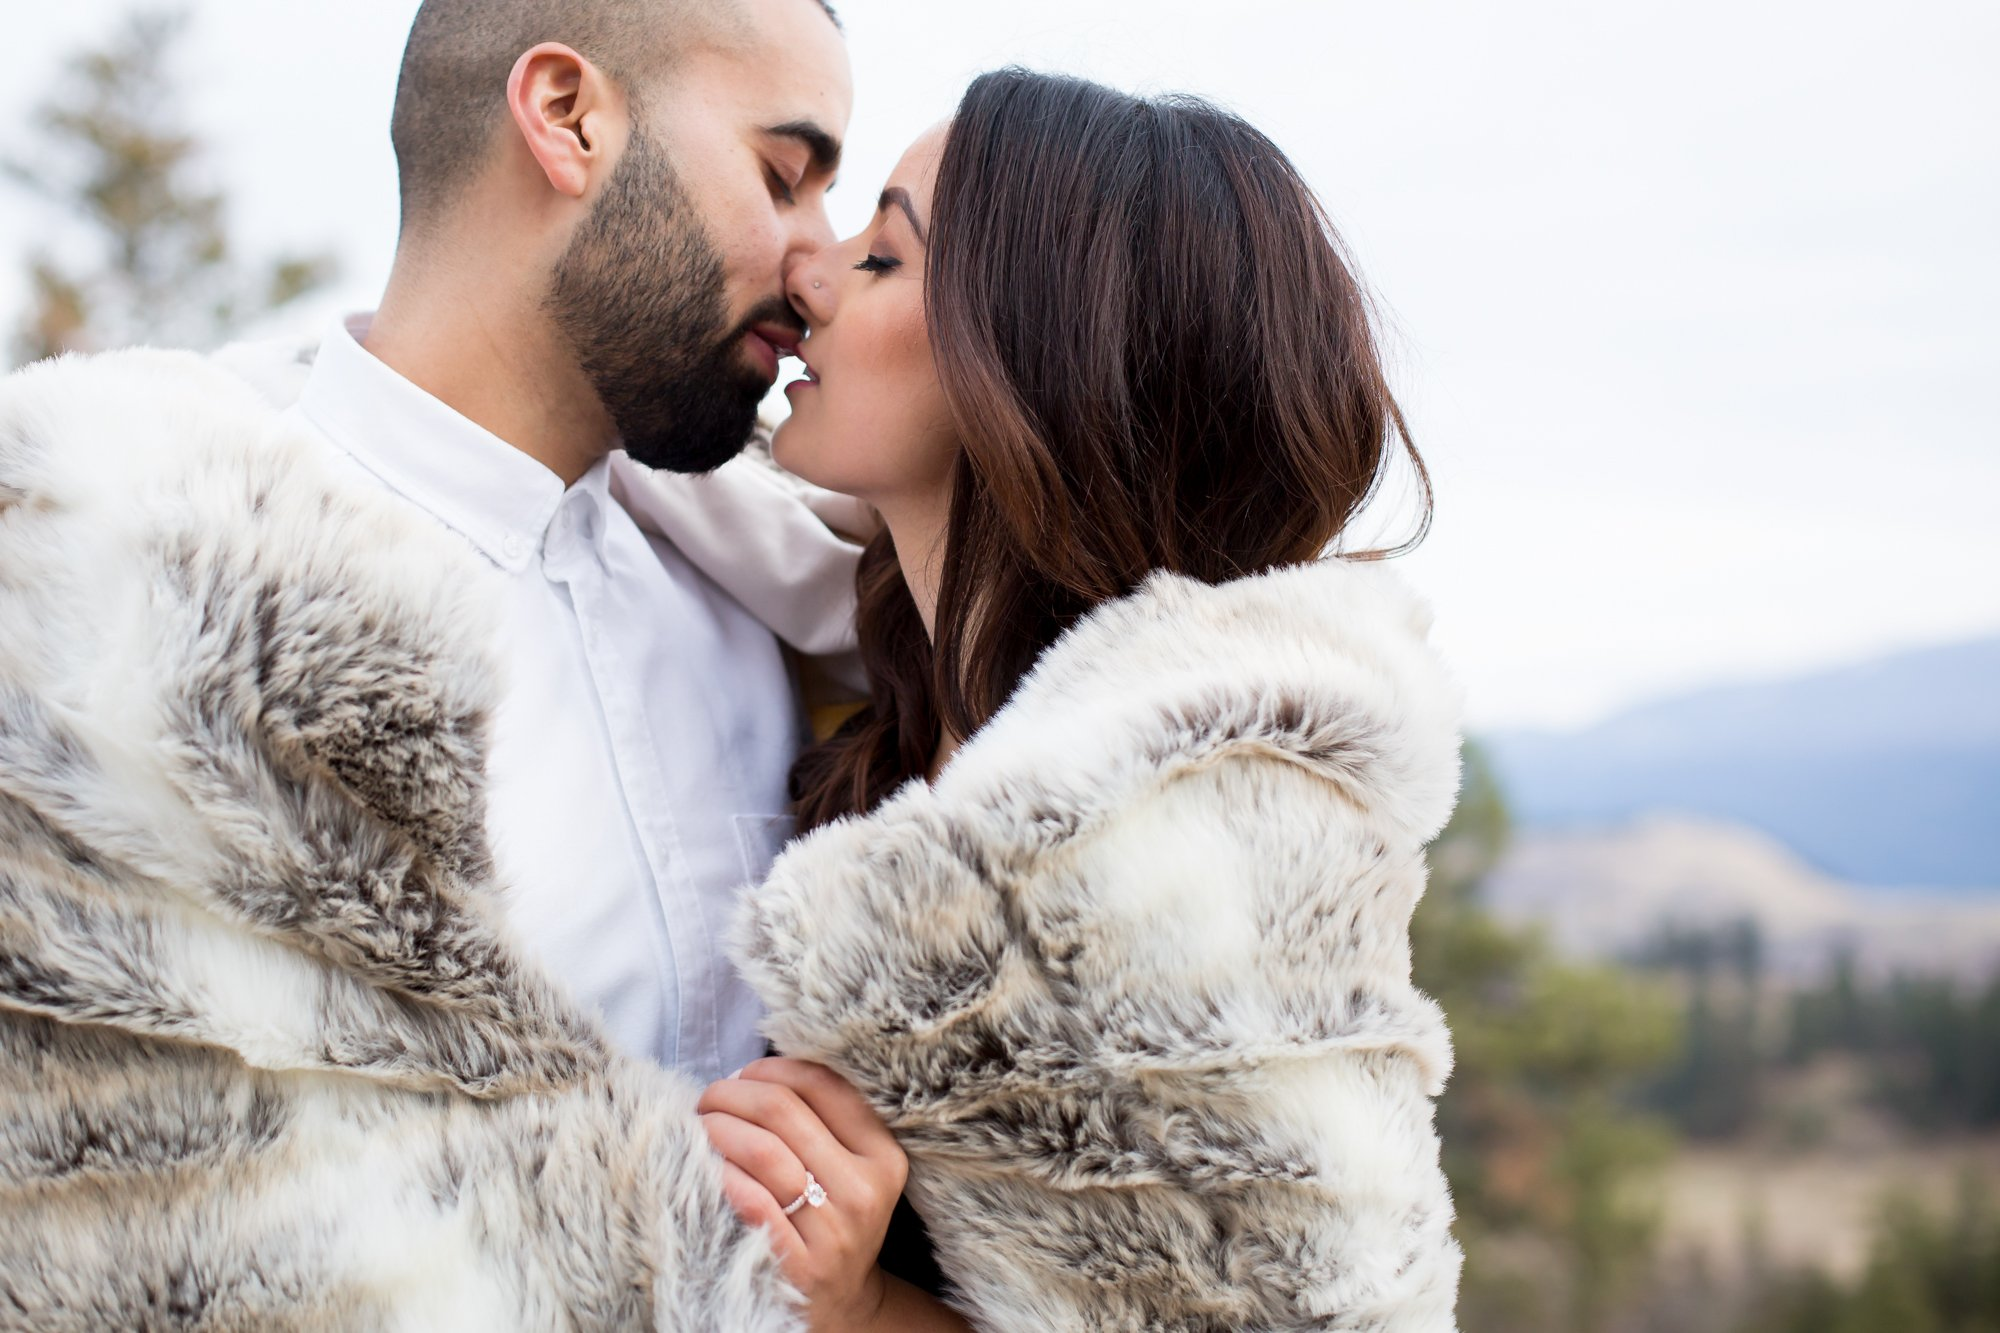 A couple kissing wrapped in a blanket